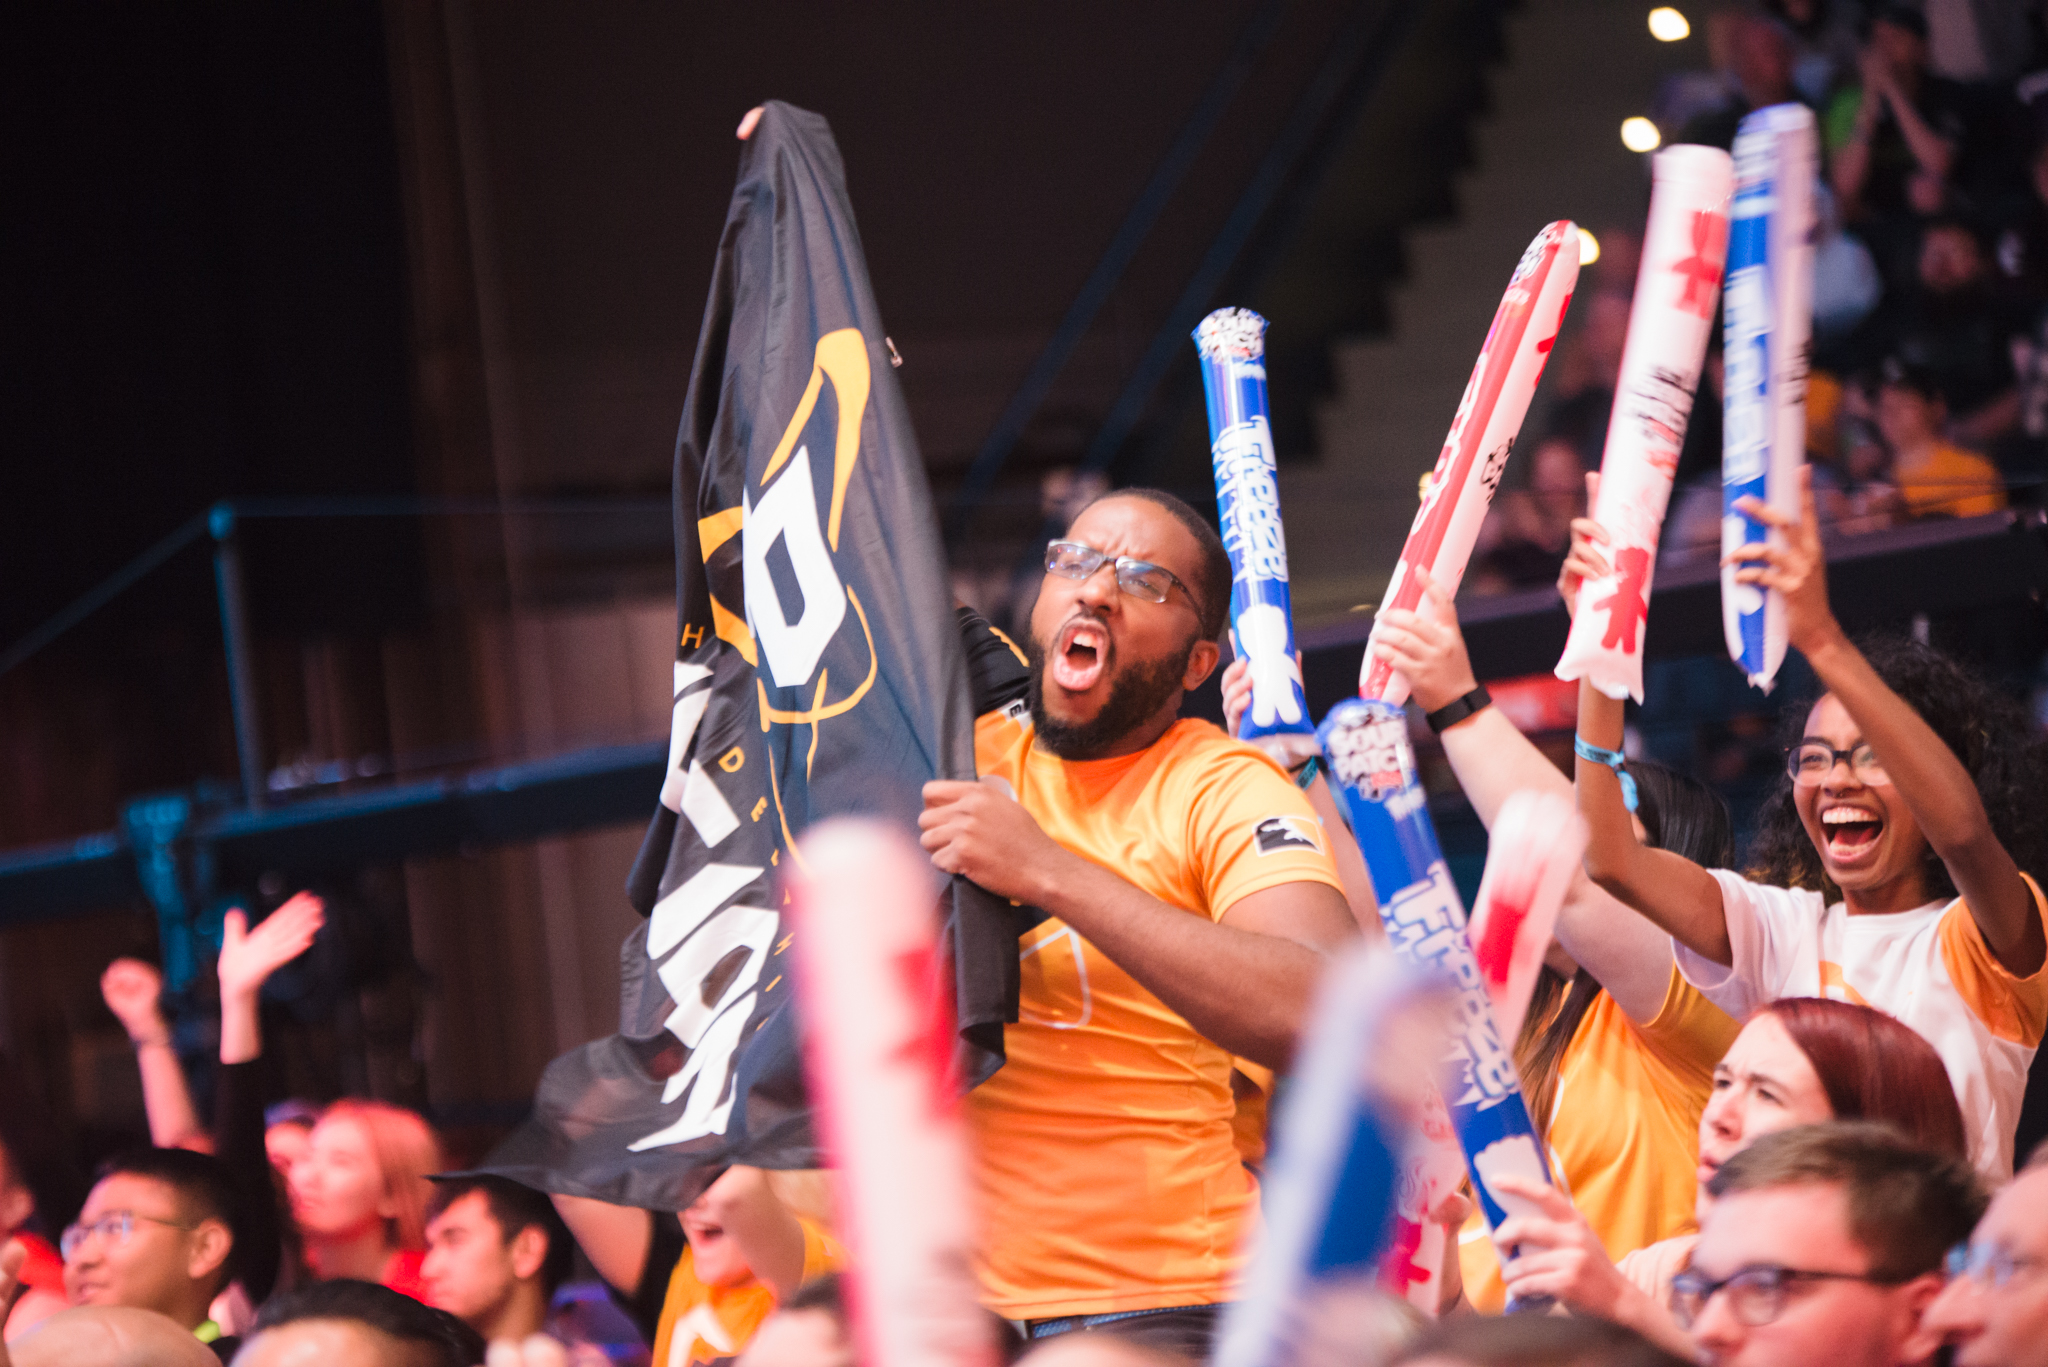 A fan cheers for the Philadelphia Fusion at an Overwatch League game